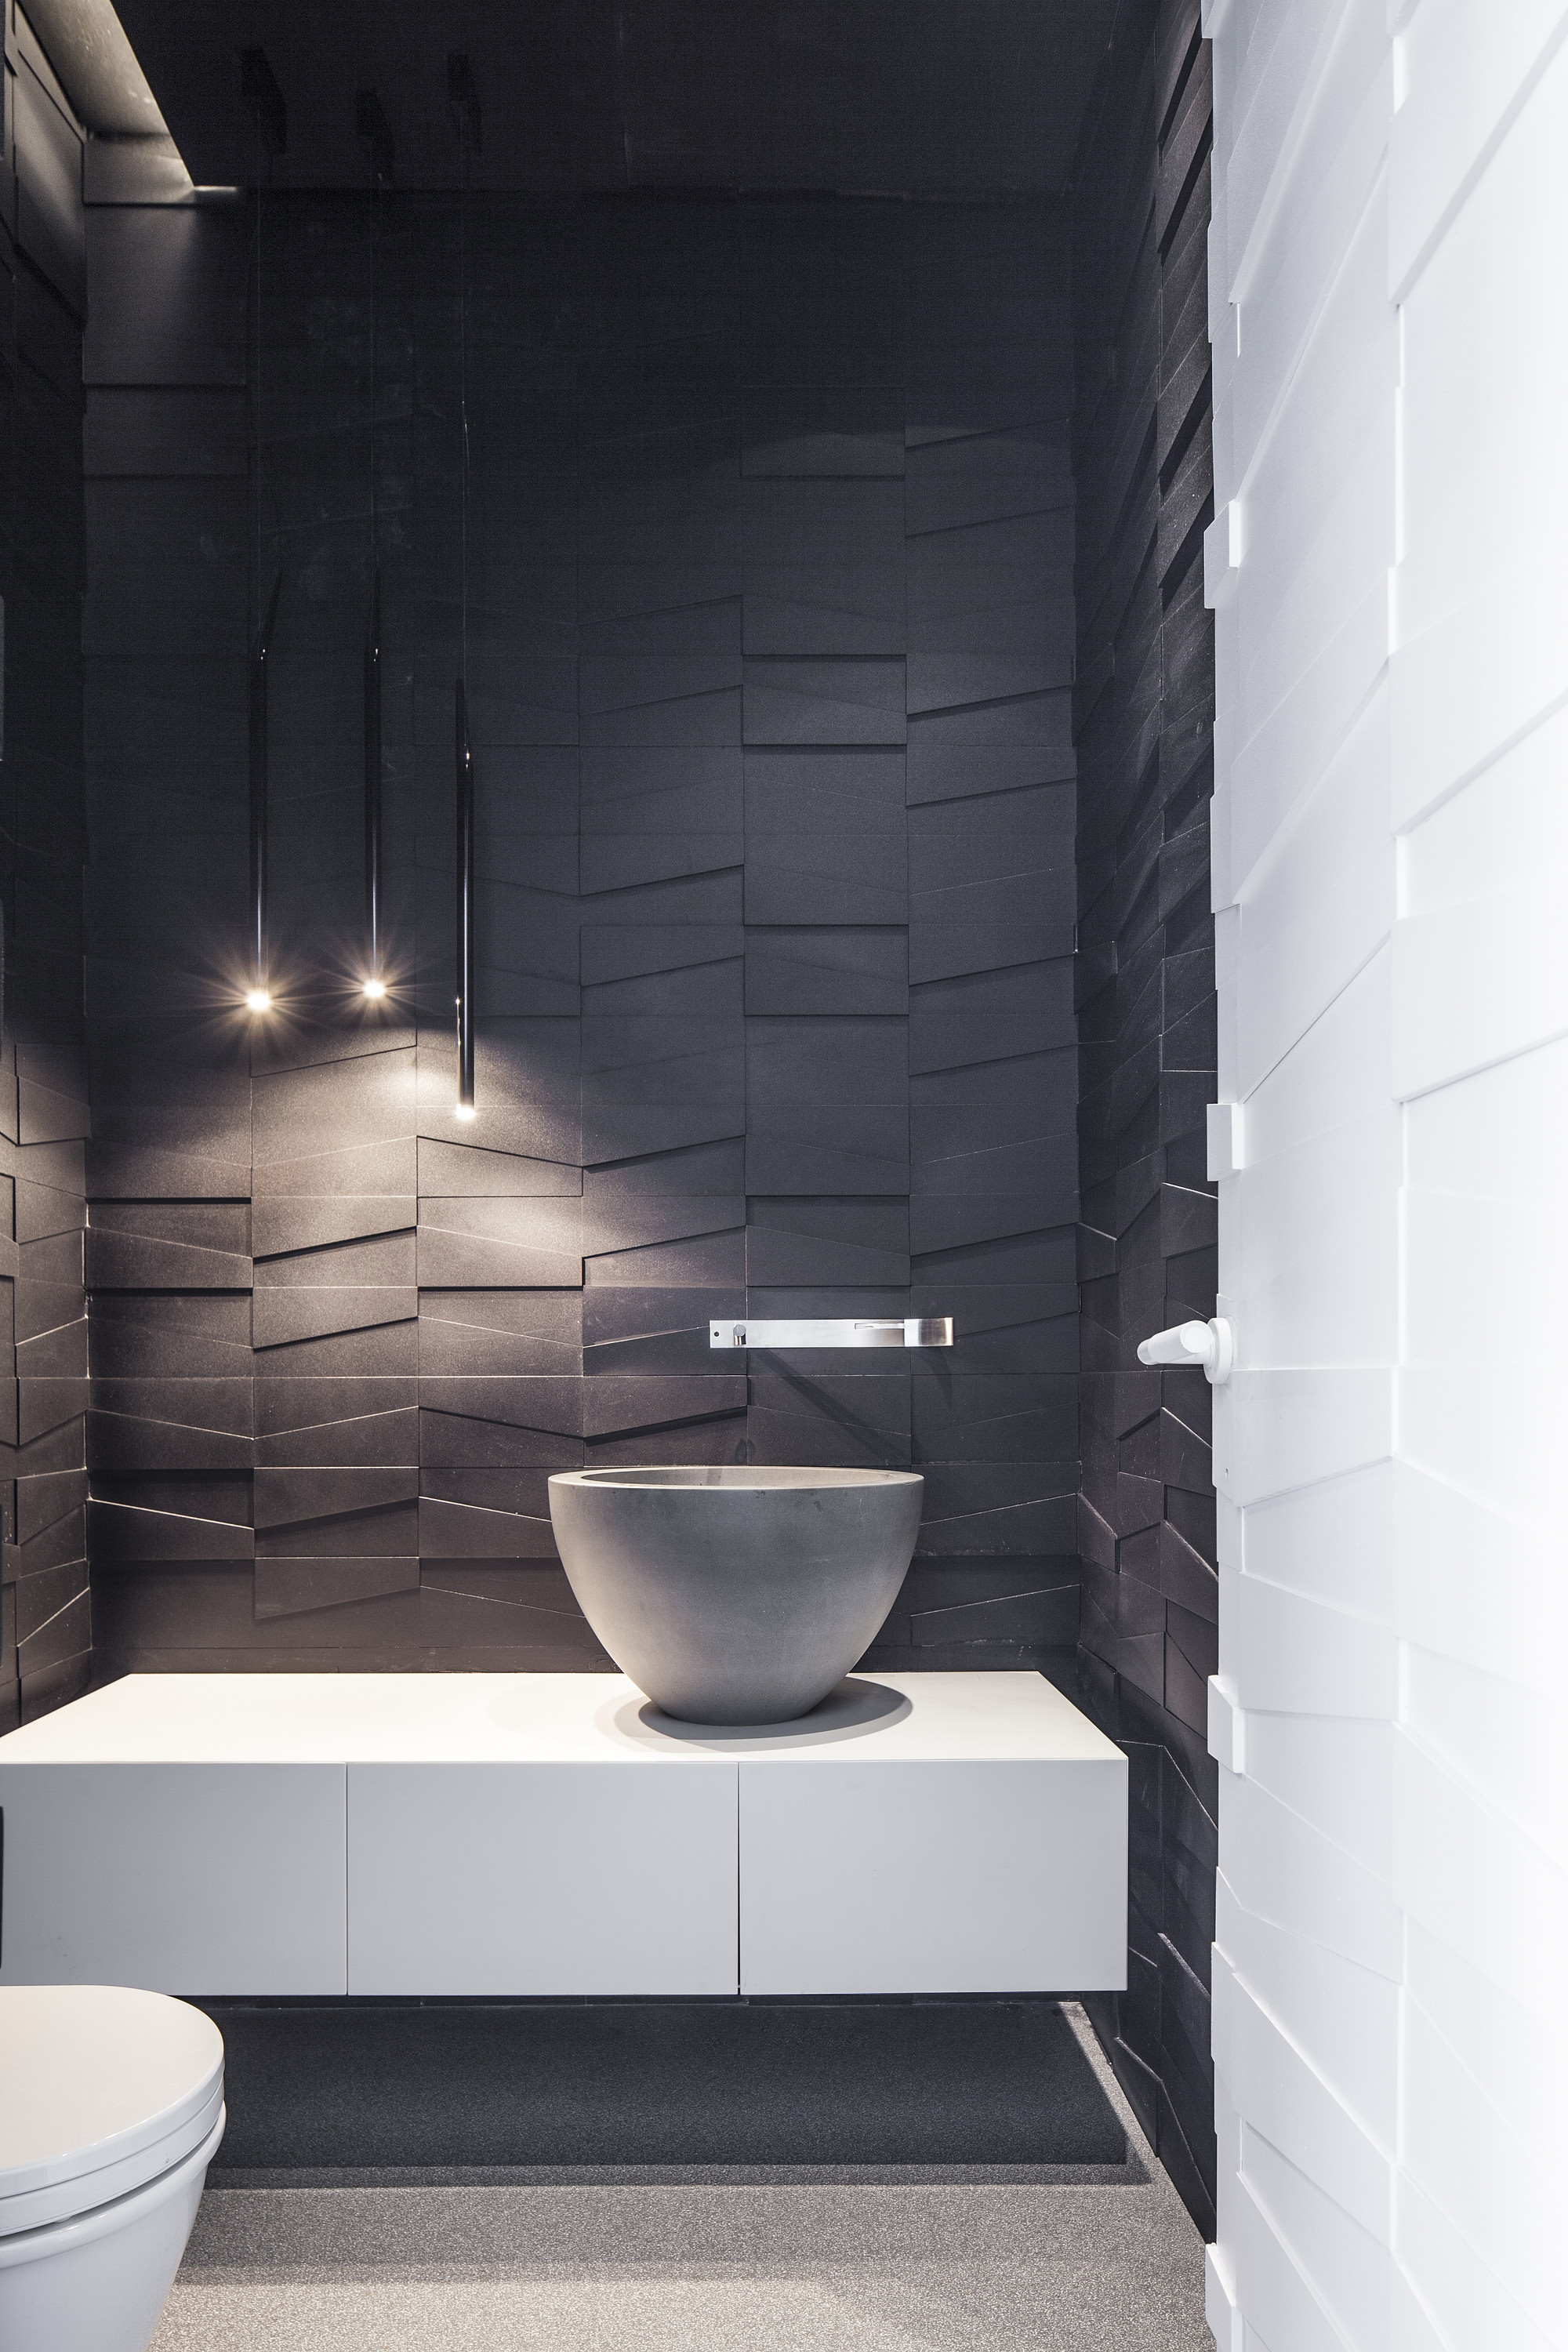 Luxe penthouse toilet interieur inrichting for Interieur inrichting